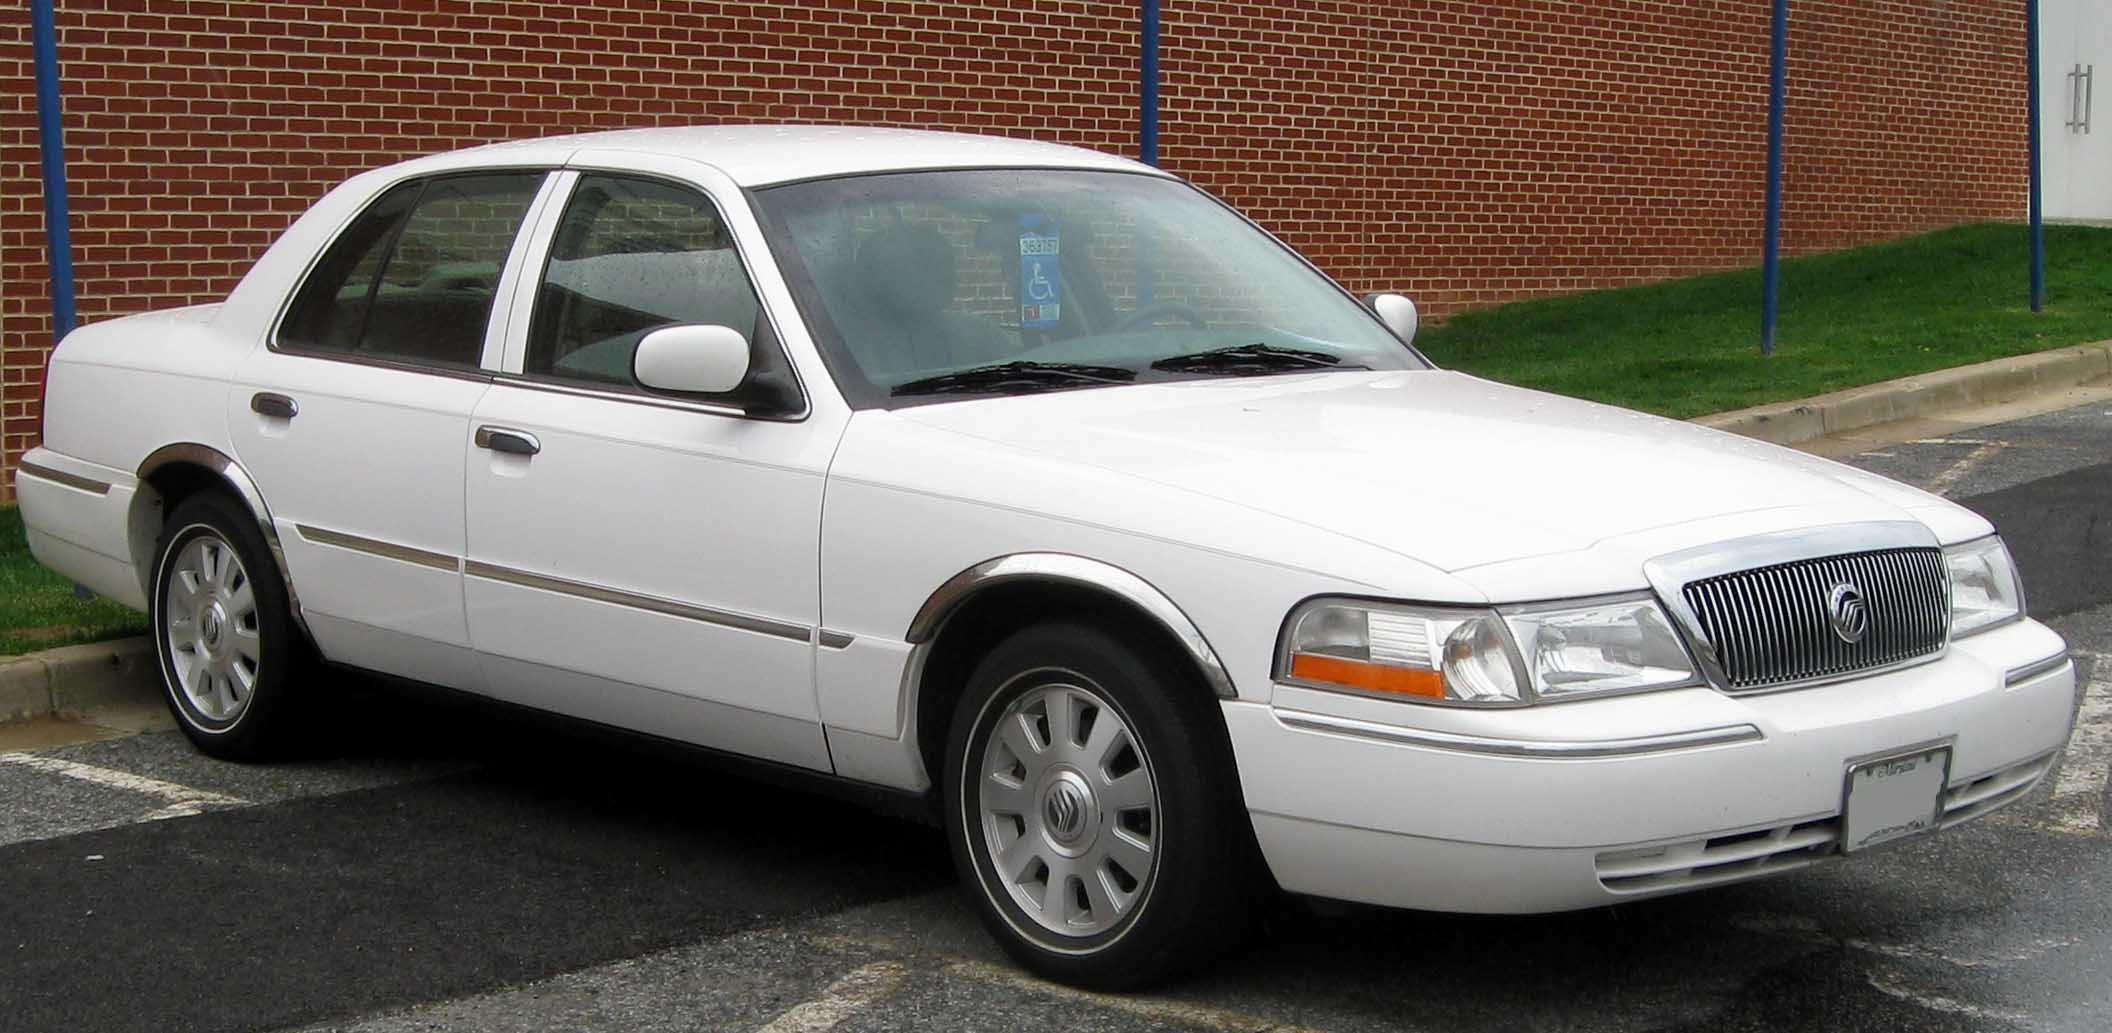 2009 Mercury Grand Marquis #2